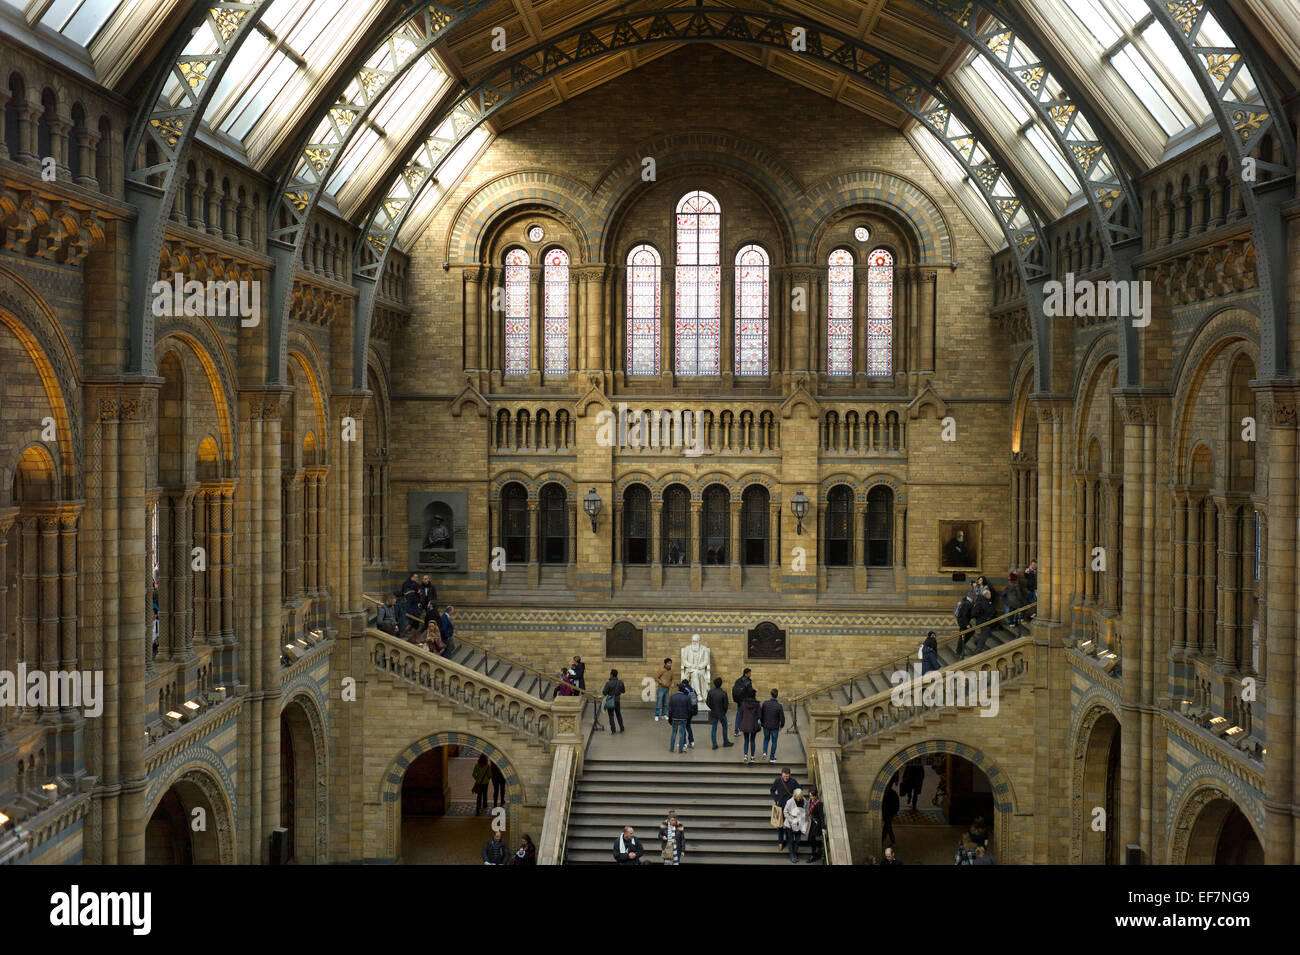 Natural History Museum, London, England,UK. January 2015 - Stock Image